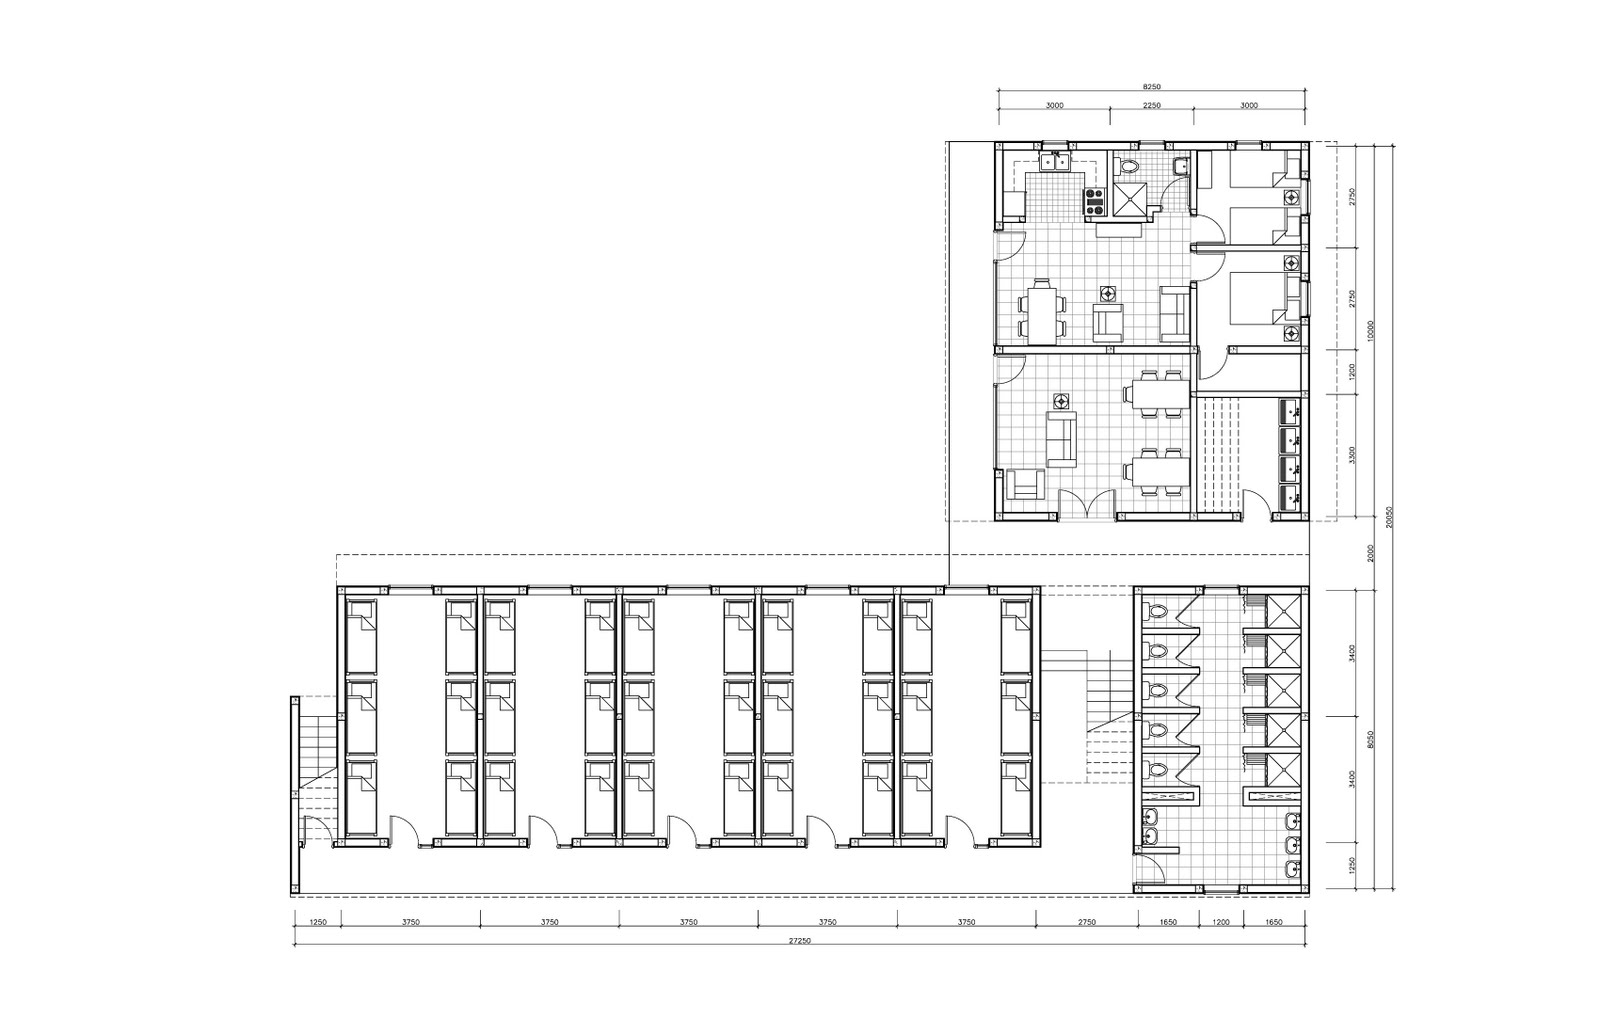 Photo Dormitory Floor Plan Images 28 Dormitory Floor